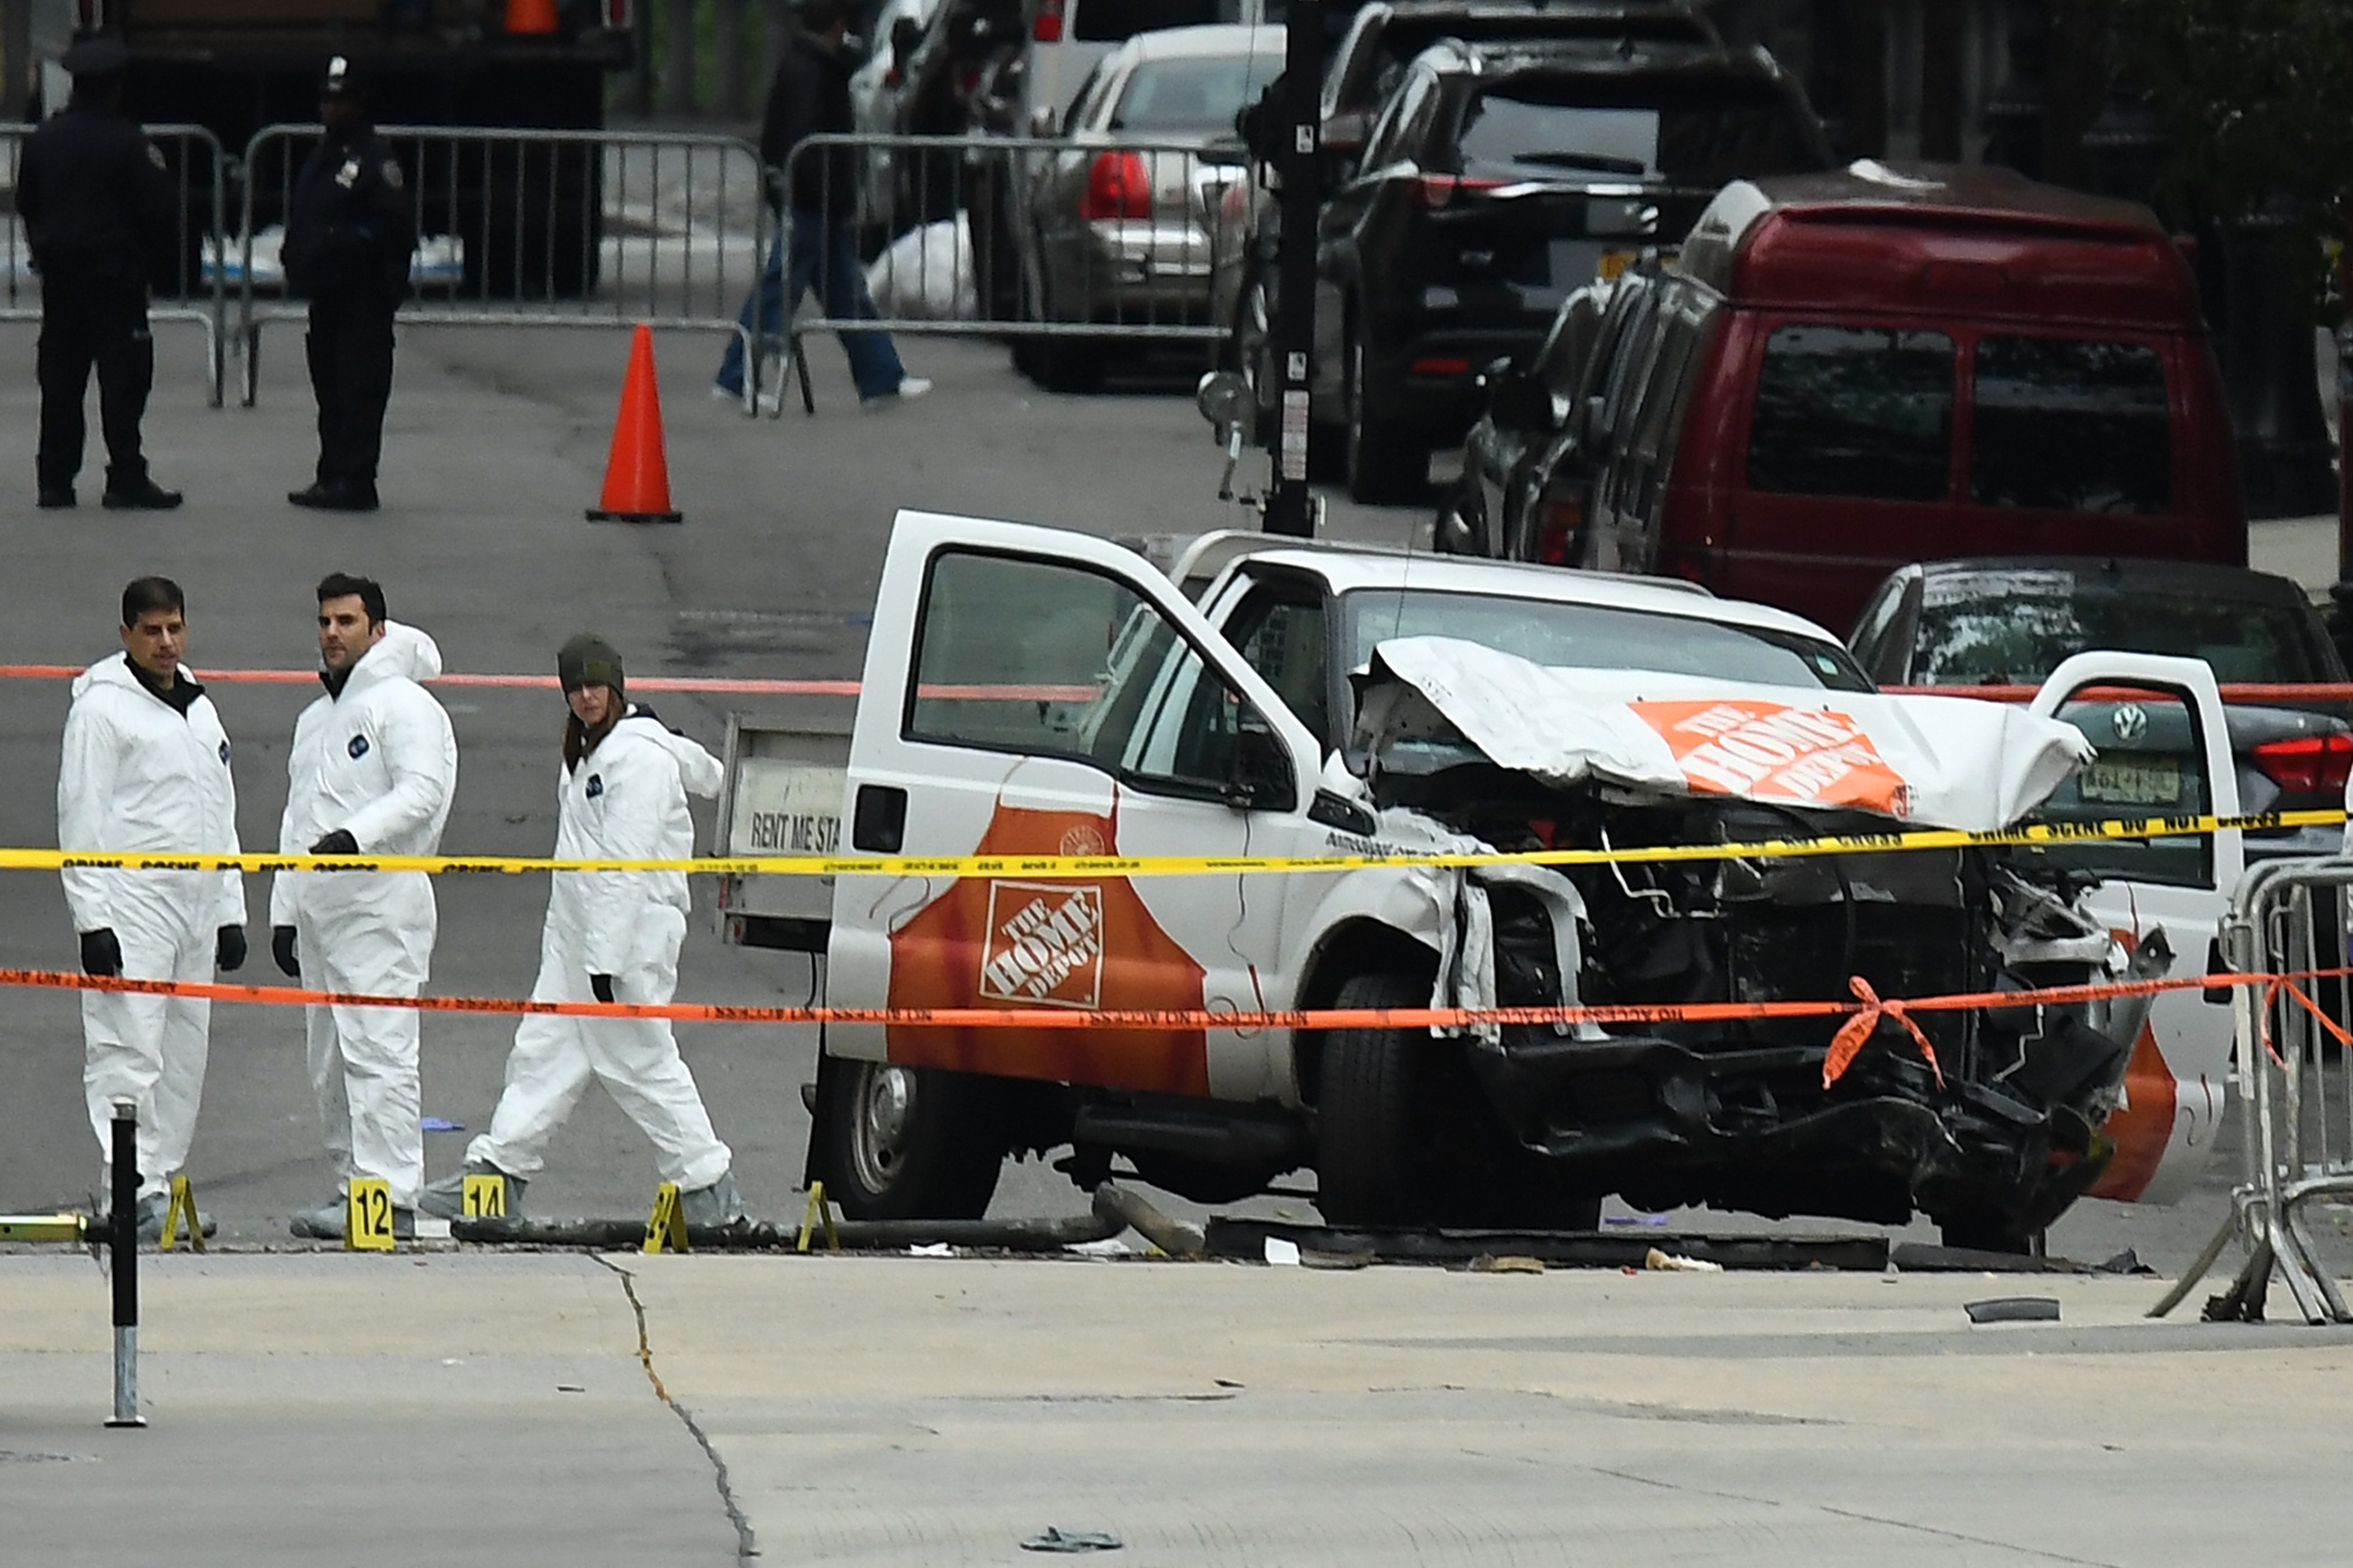 Investigators work around the wreckage of a Home Depot pickup truck a day after it was used in a terror attack in New York on November 1, 2017. The pickup truck driver who plowed down a New York cycle path, killing eight people, in the city's worst attack since September 11, was associated with the Islamic State group but